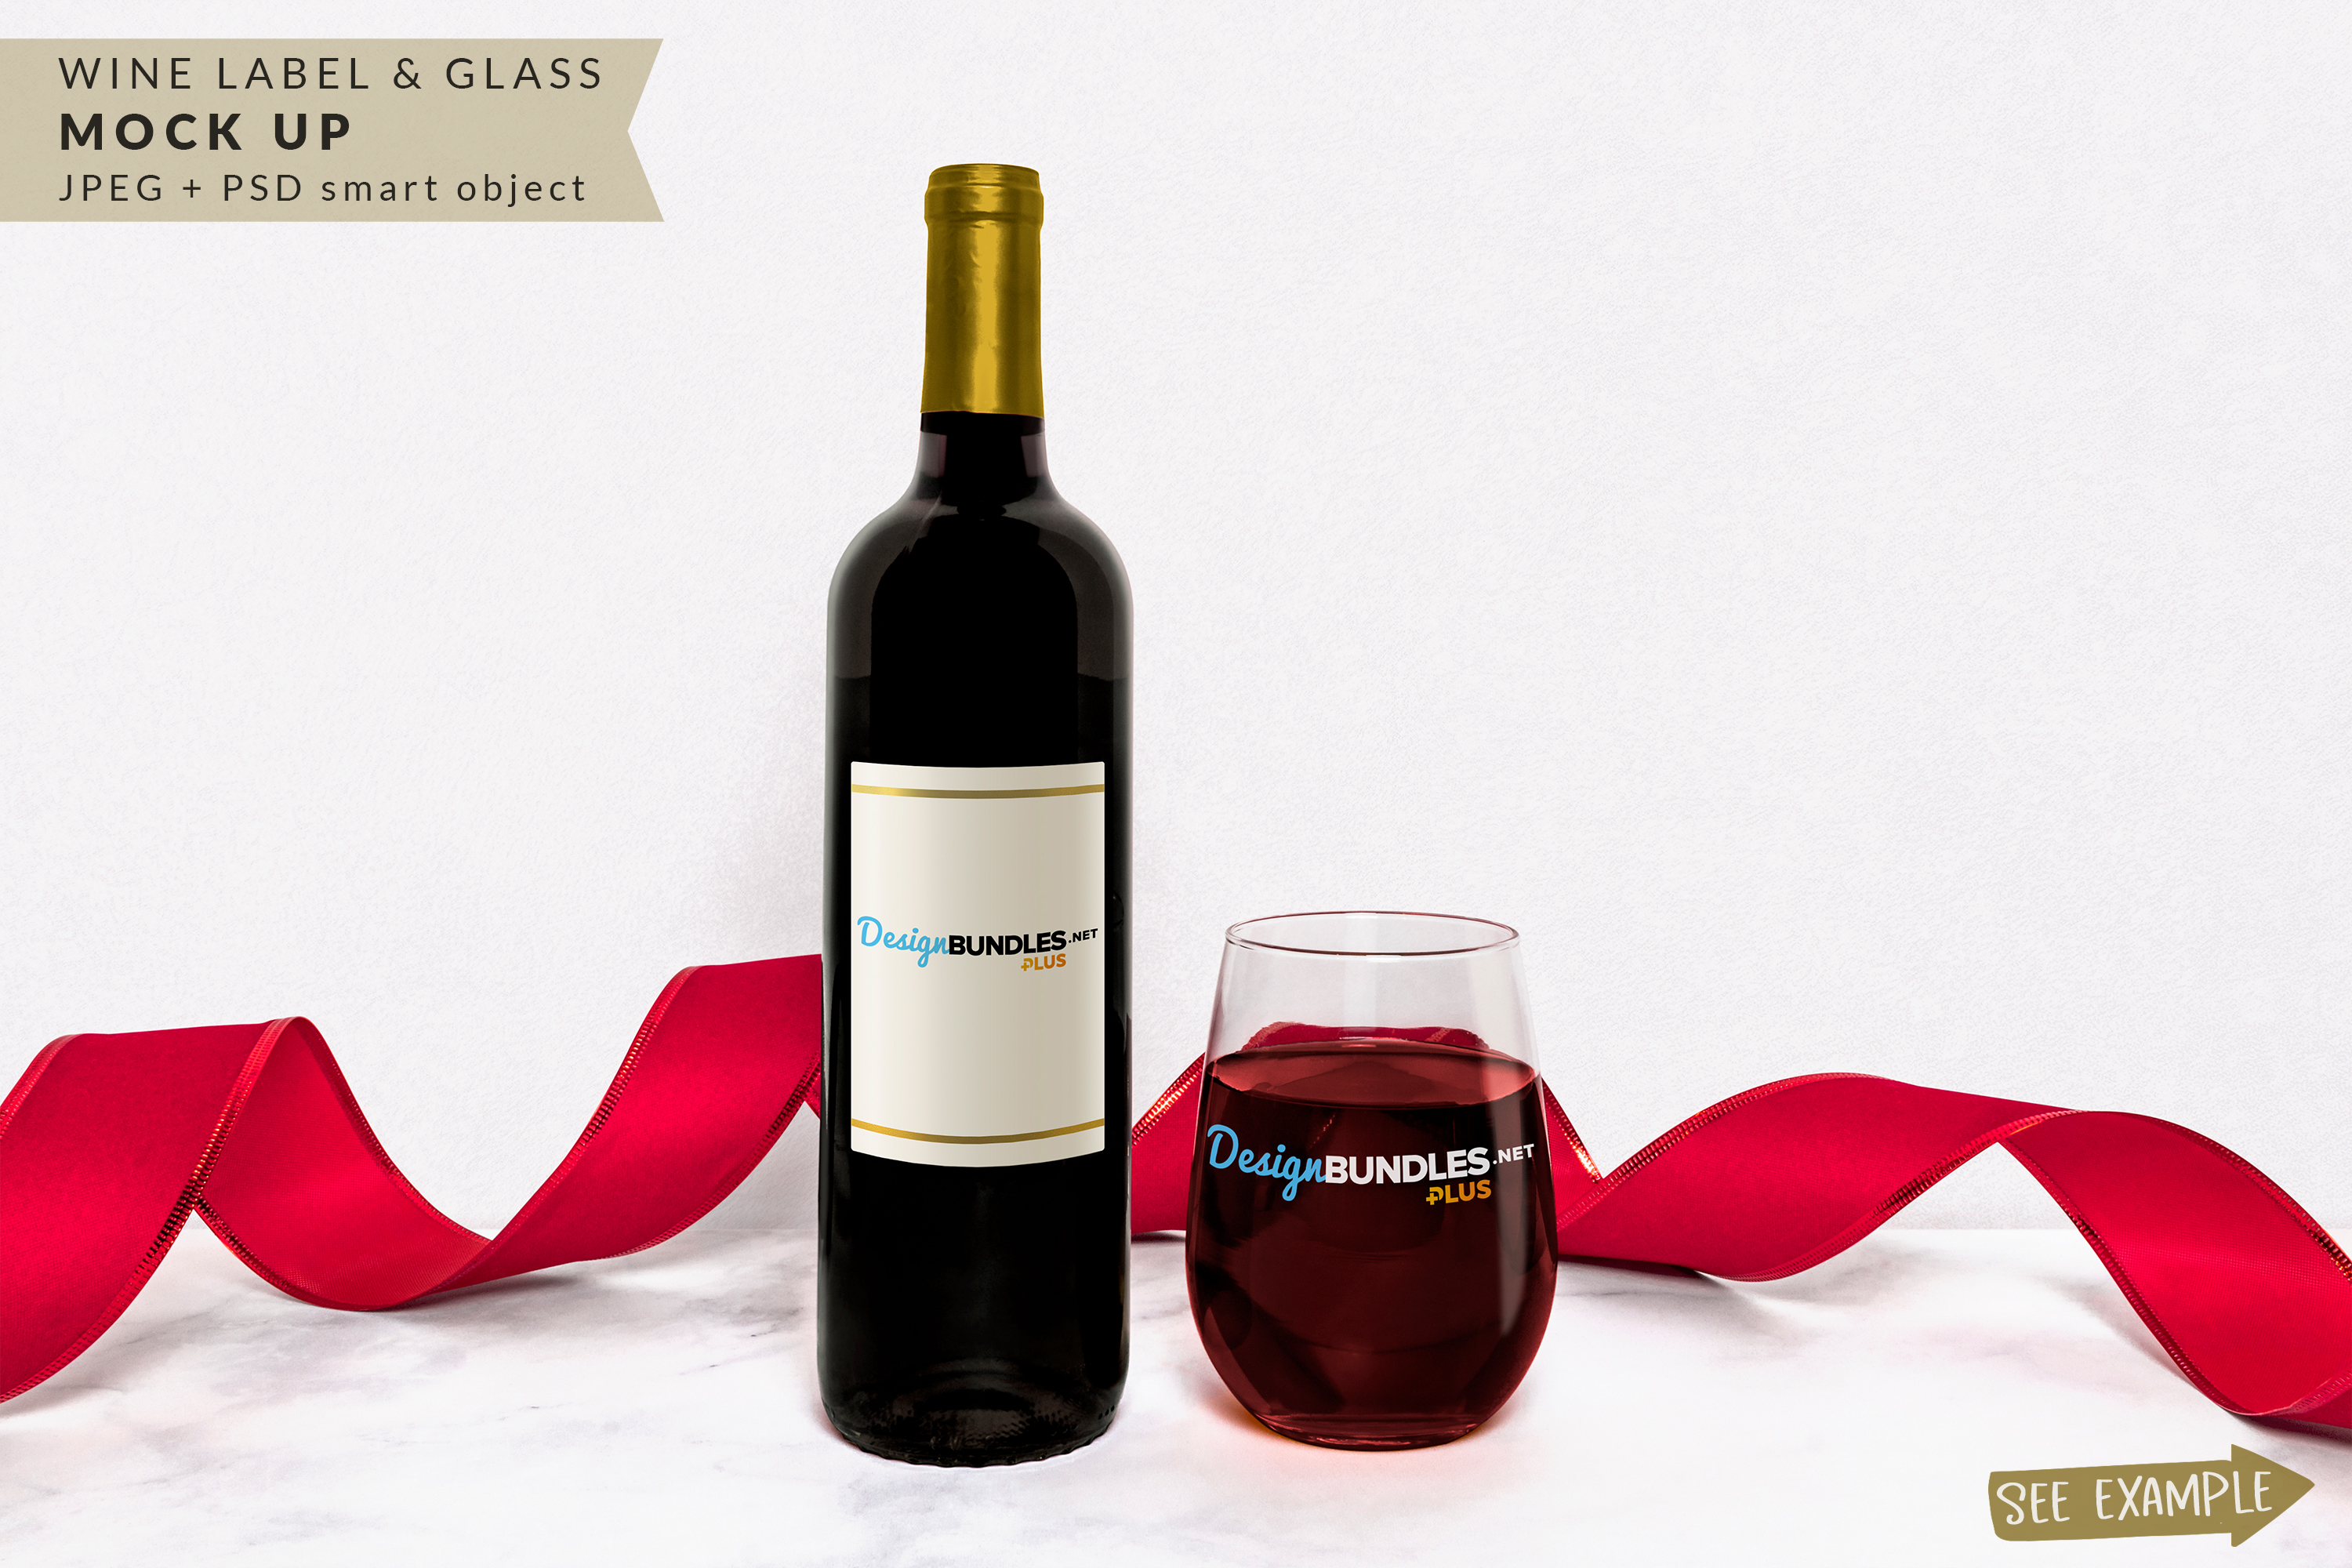 Wine Bottle Label & Wine Glass Mockup example image 1